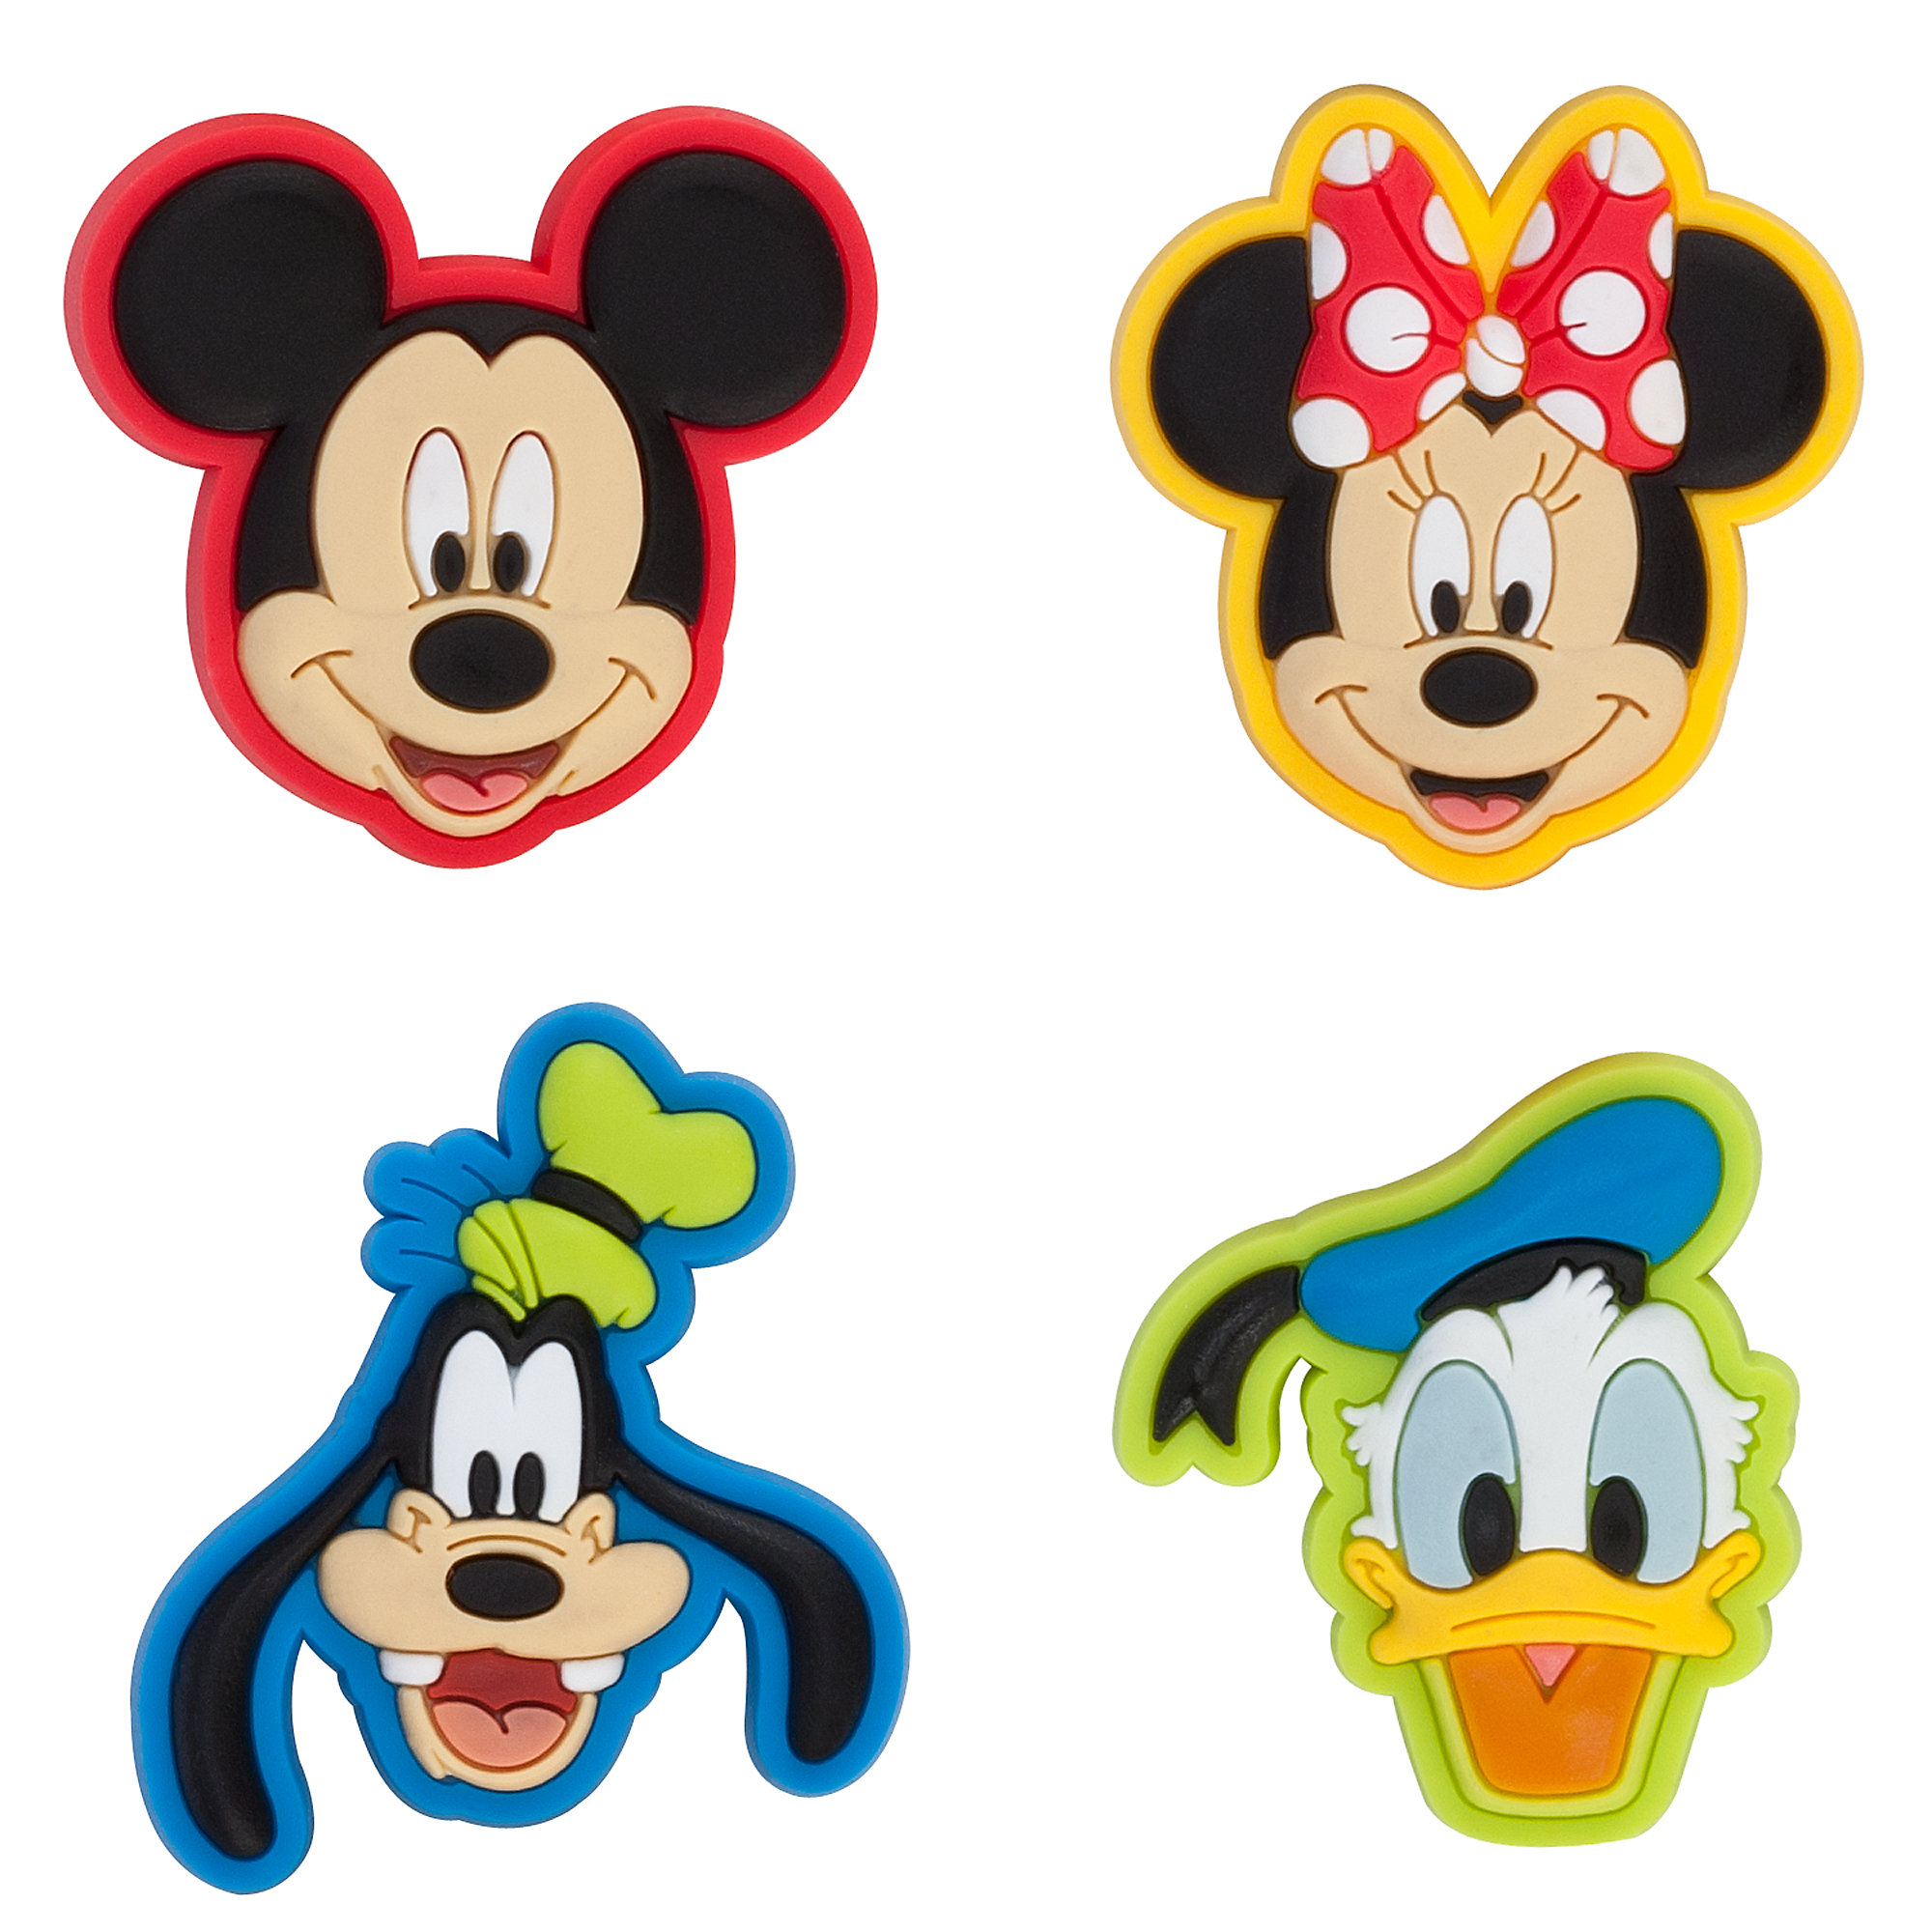 2000x2000 Mickey Mouse And Friends Magicbandits Set